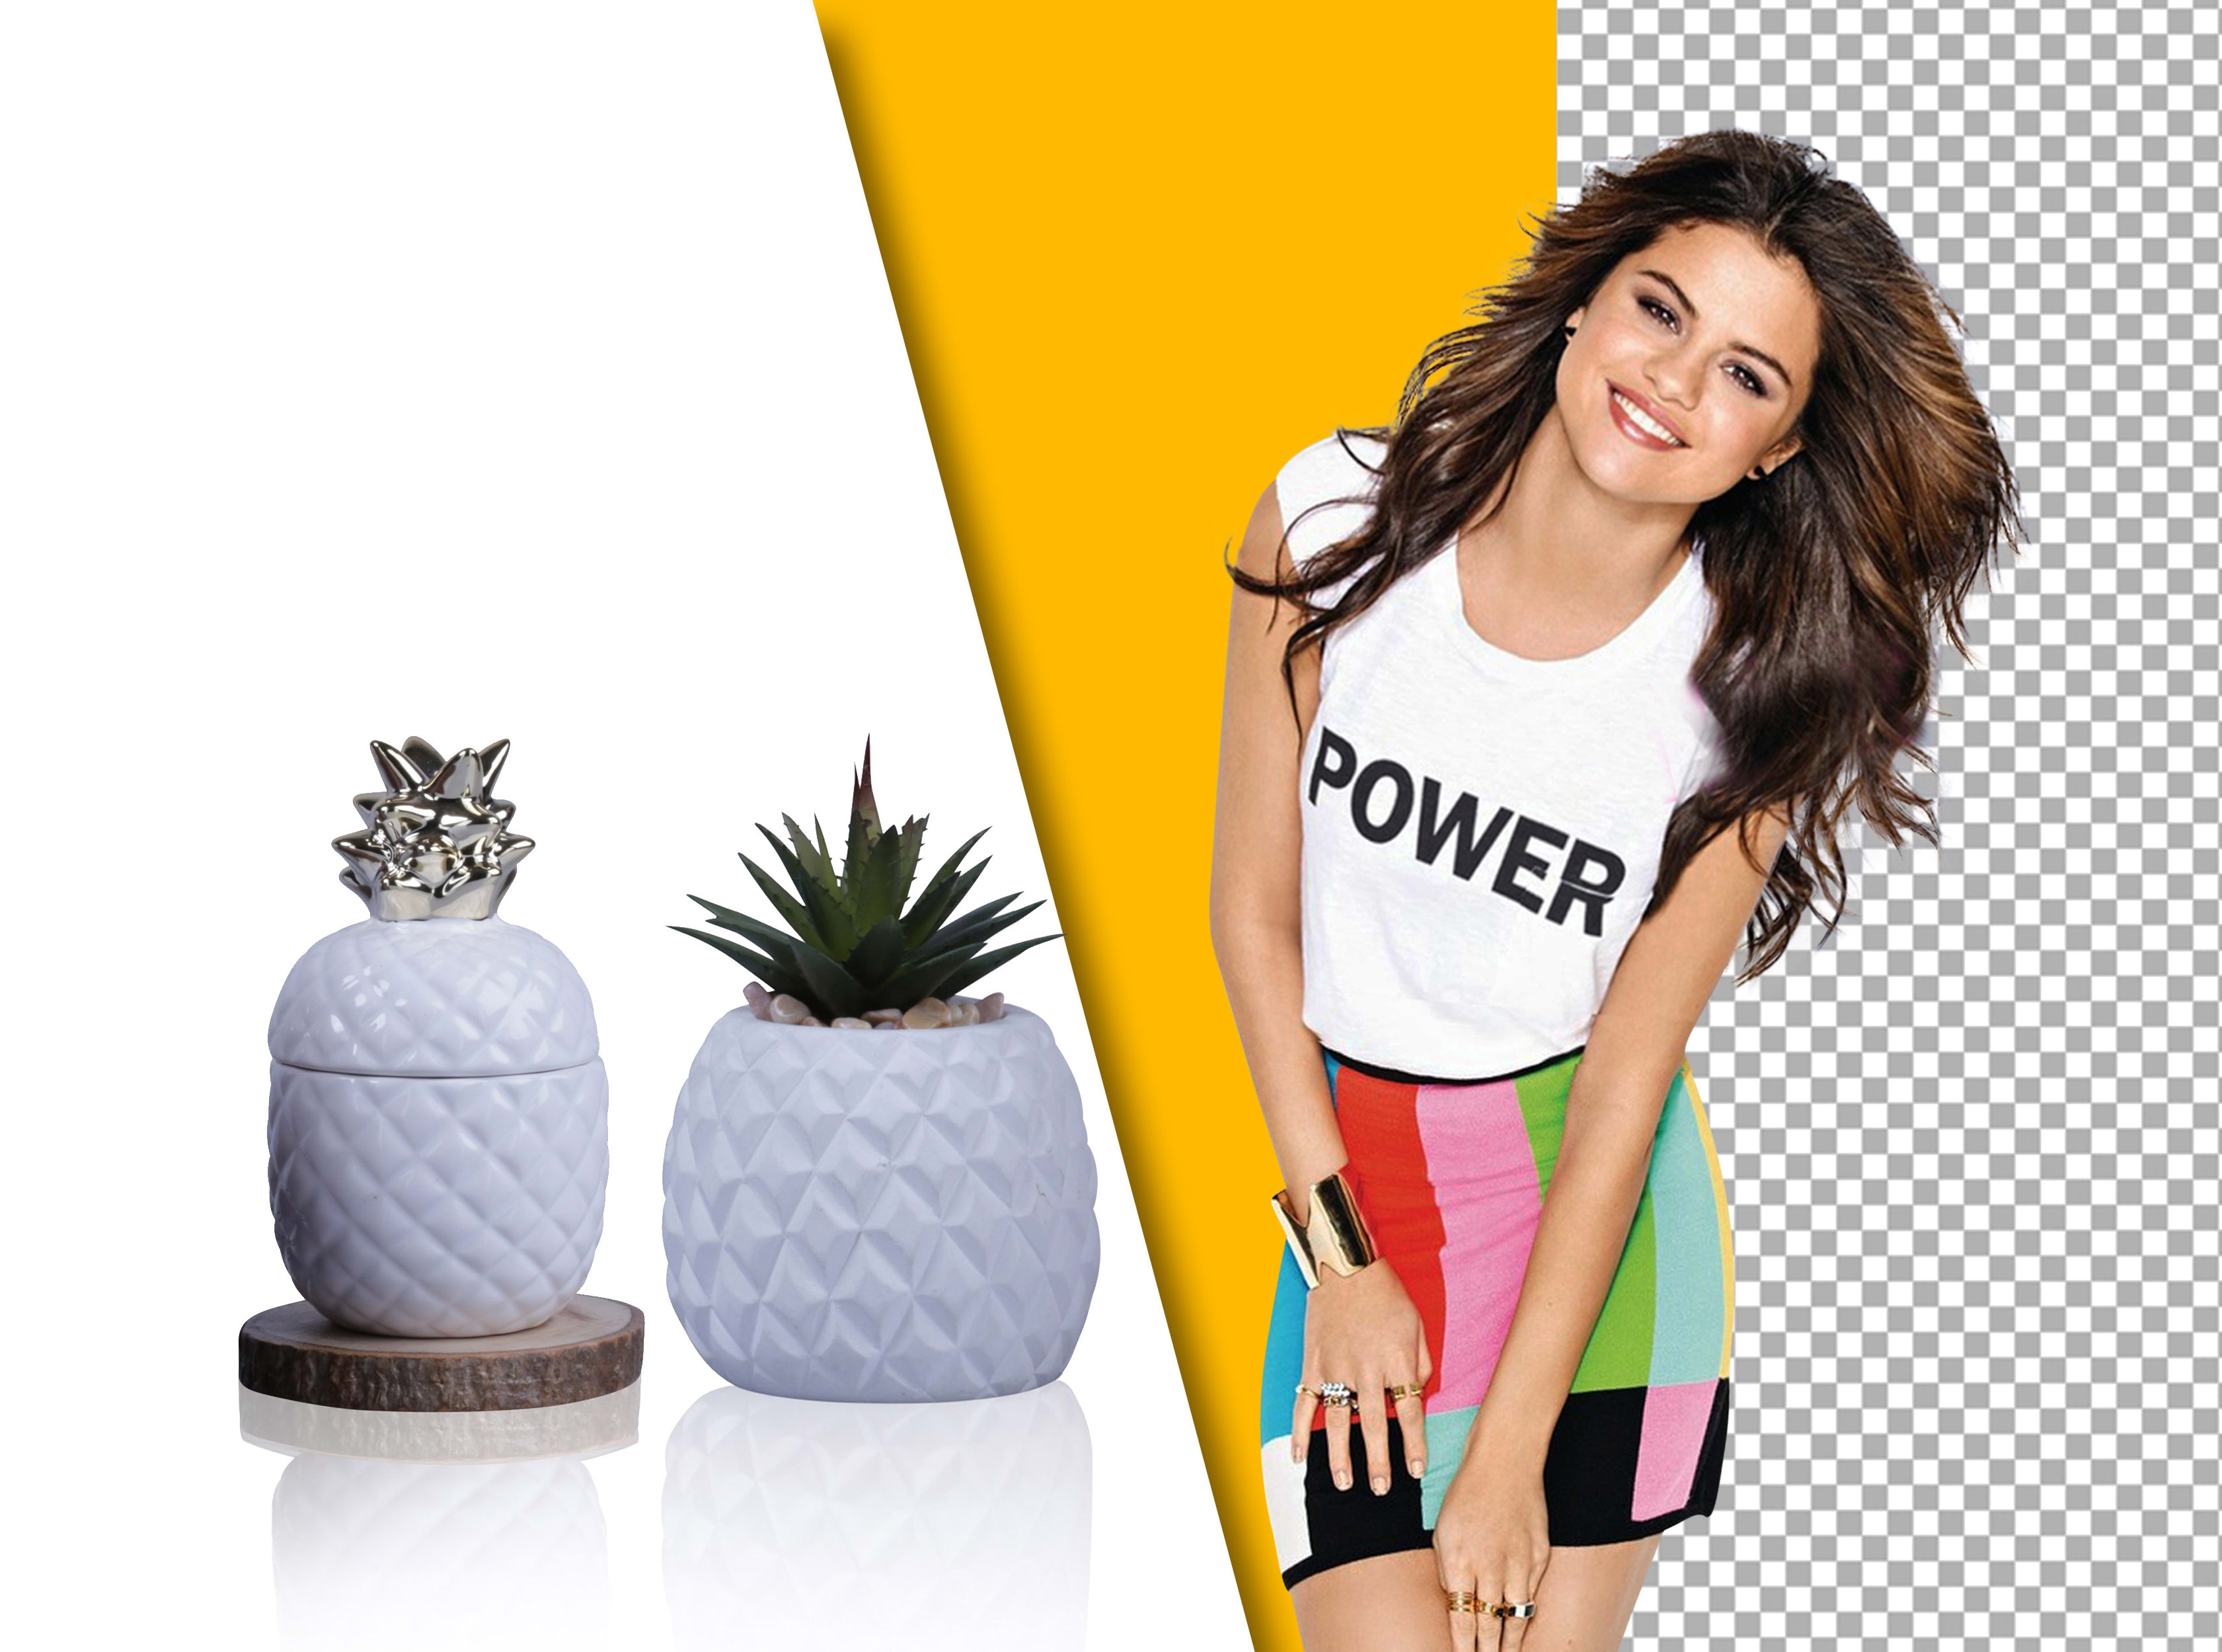 do 15 photos background removal